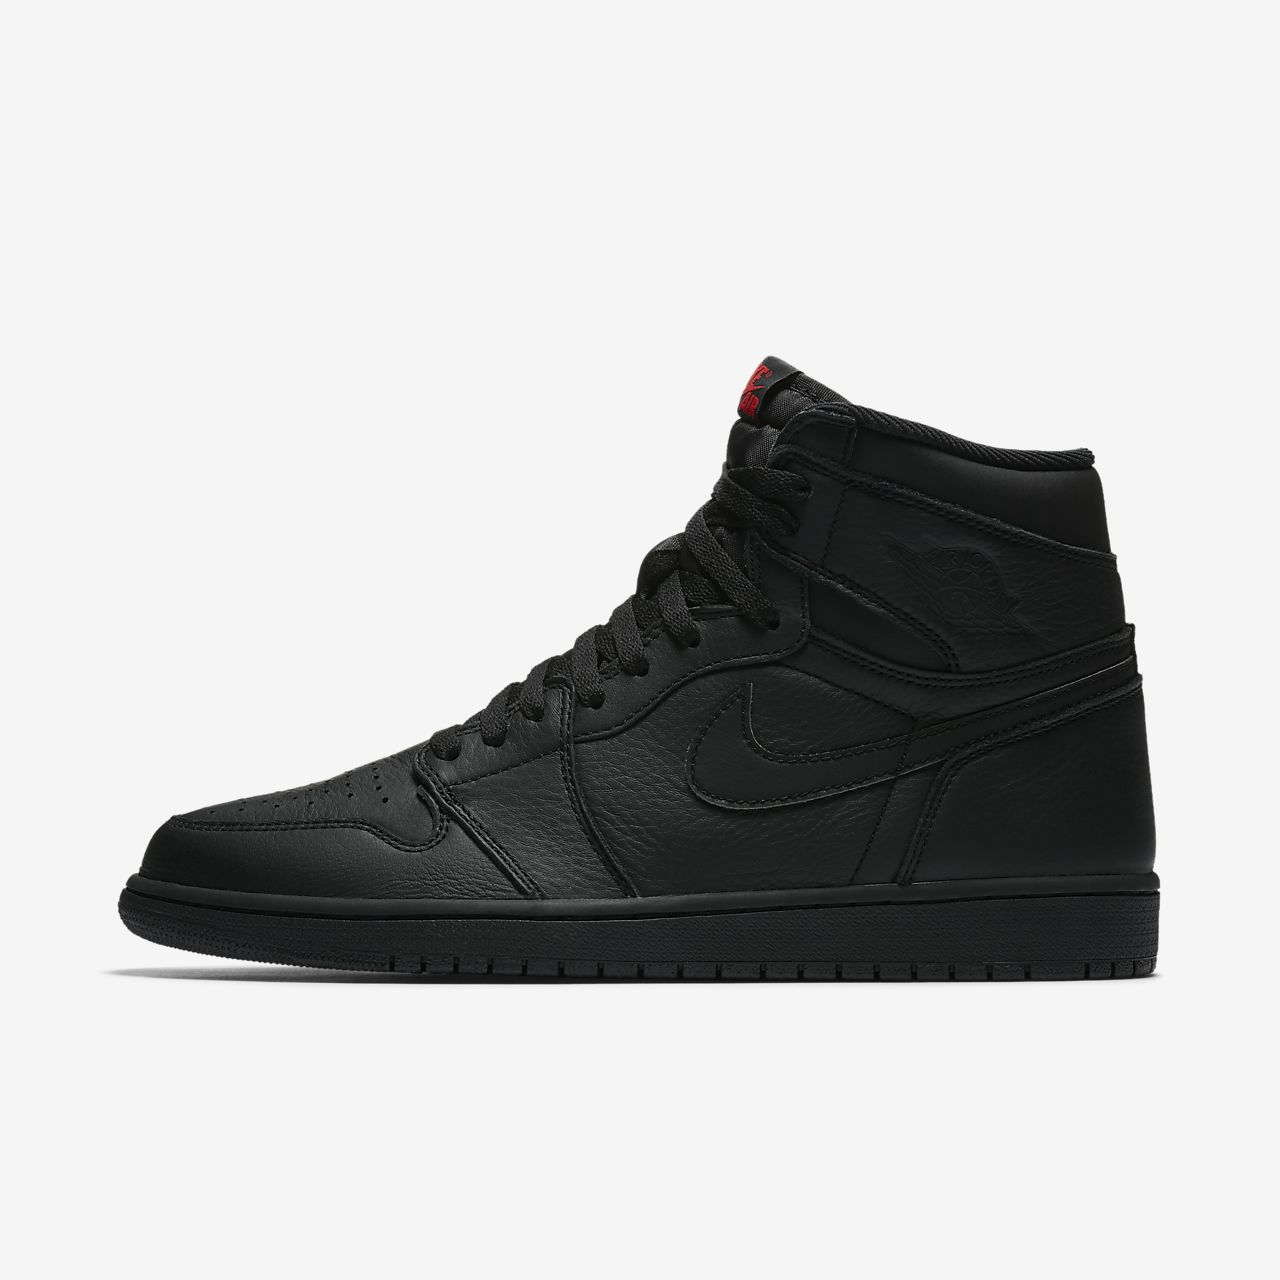 air jordan i retro high